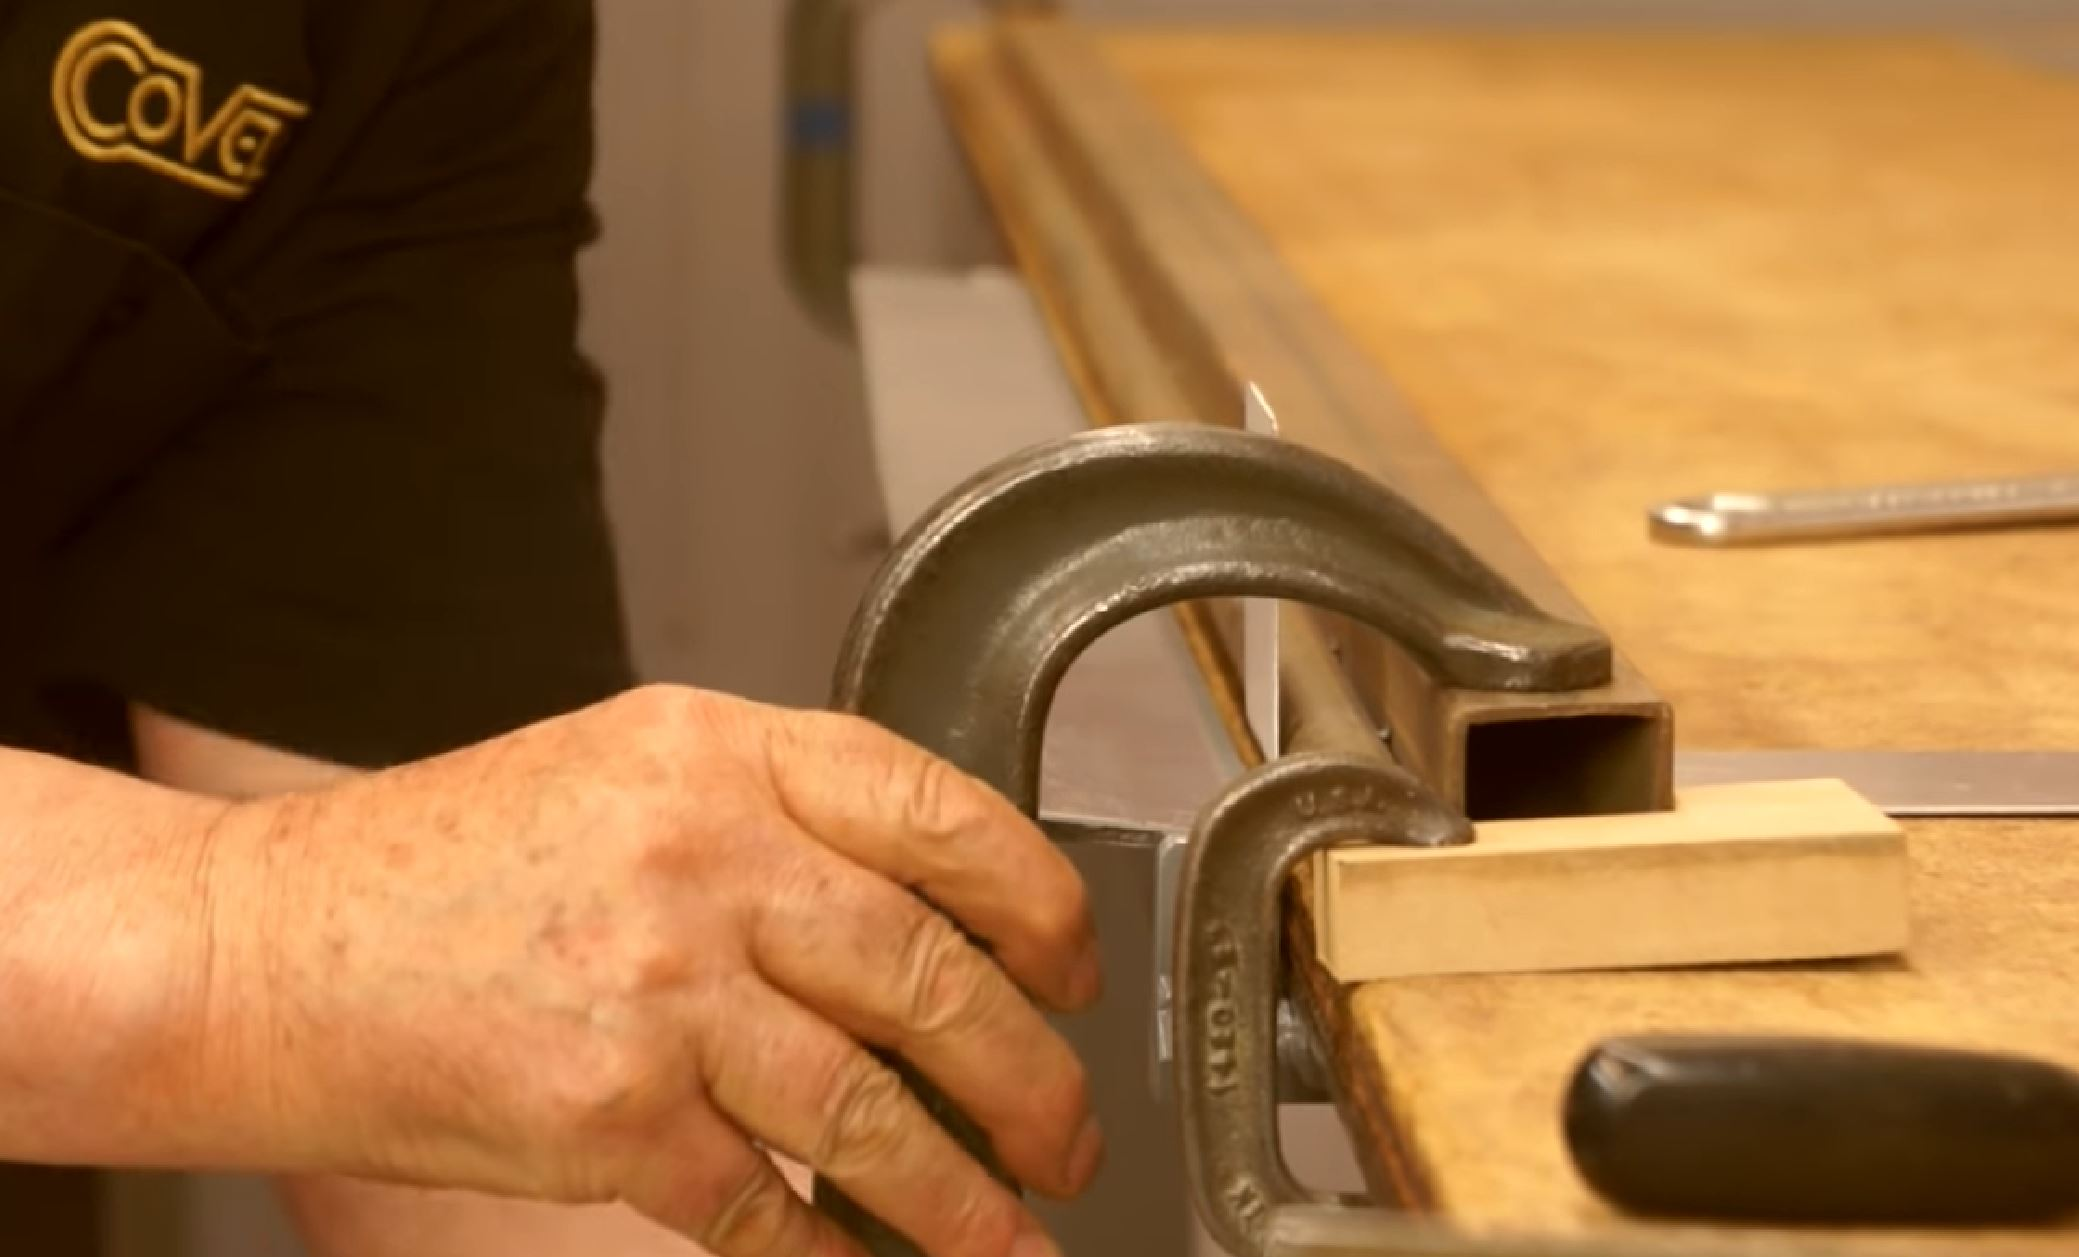 This Home Made Tool Will Make Bending A Radius Into Sheet Metal Simple And Easy